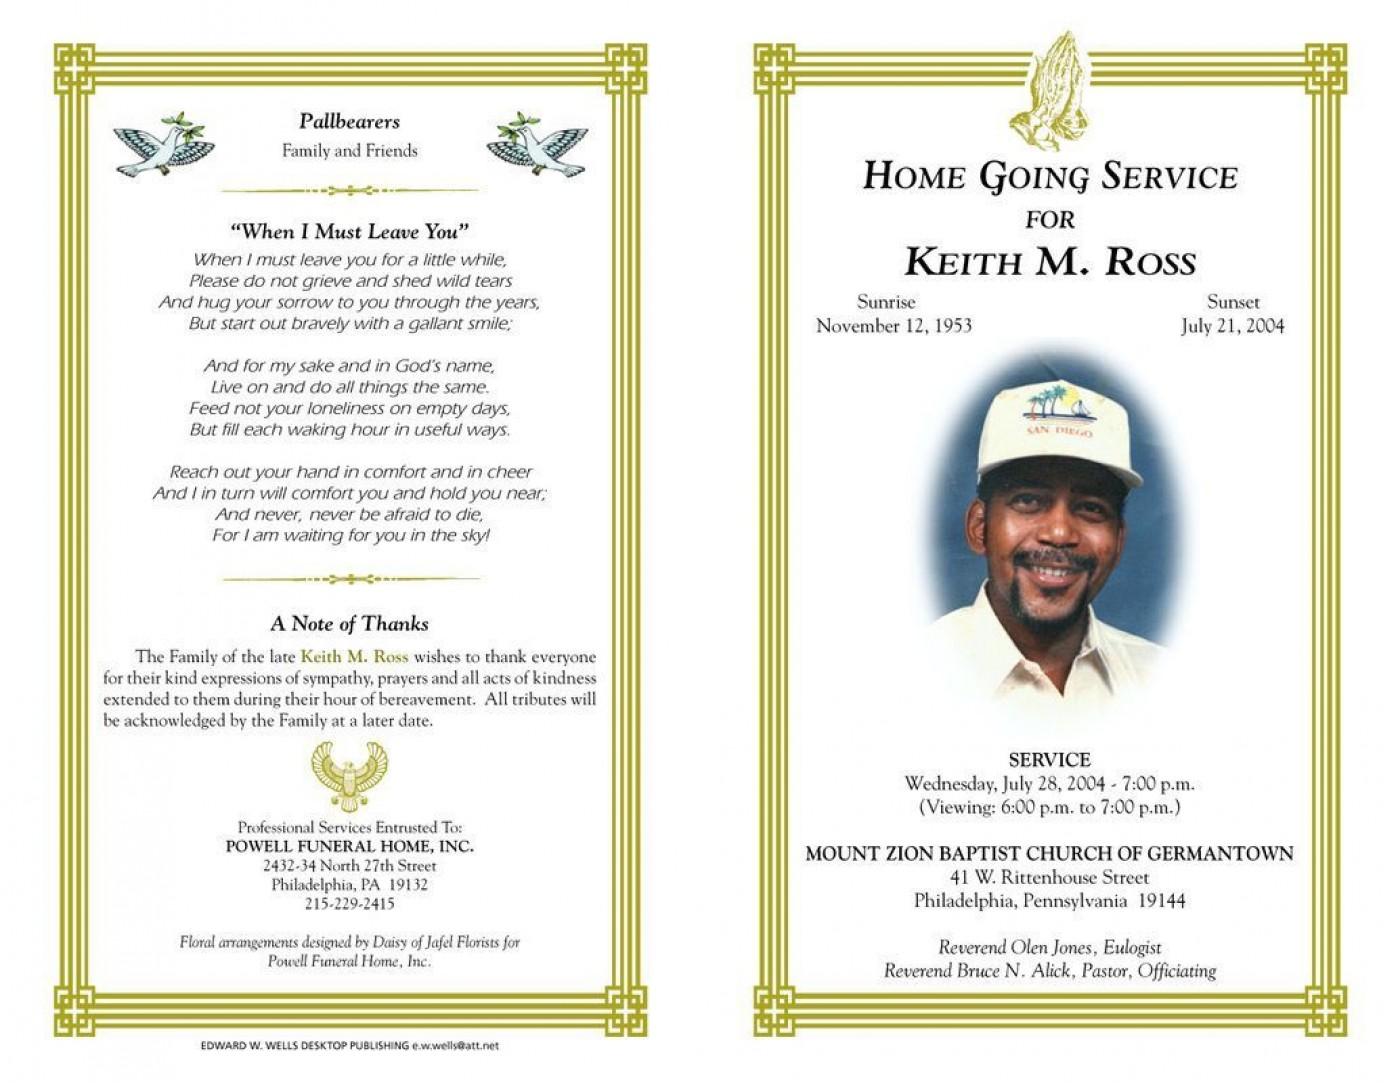 003 Marvelou Funeral Program Template Free Design  Blank Microsoft Word Layout Editable Uk1400